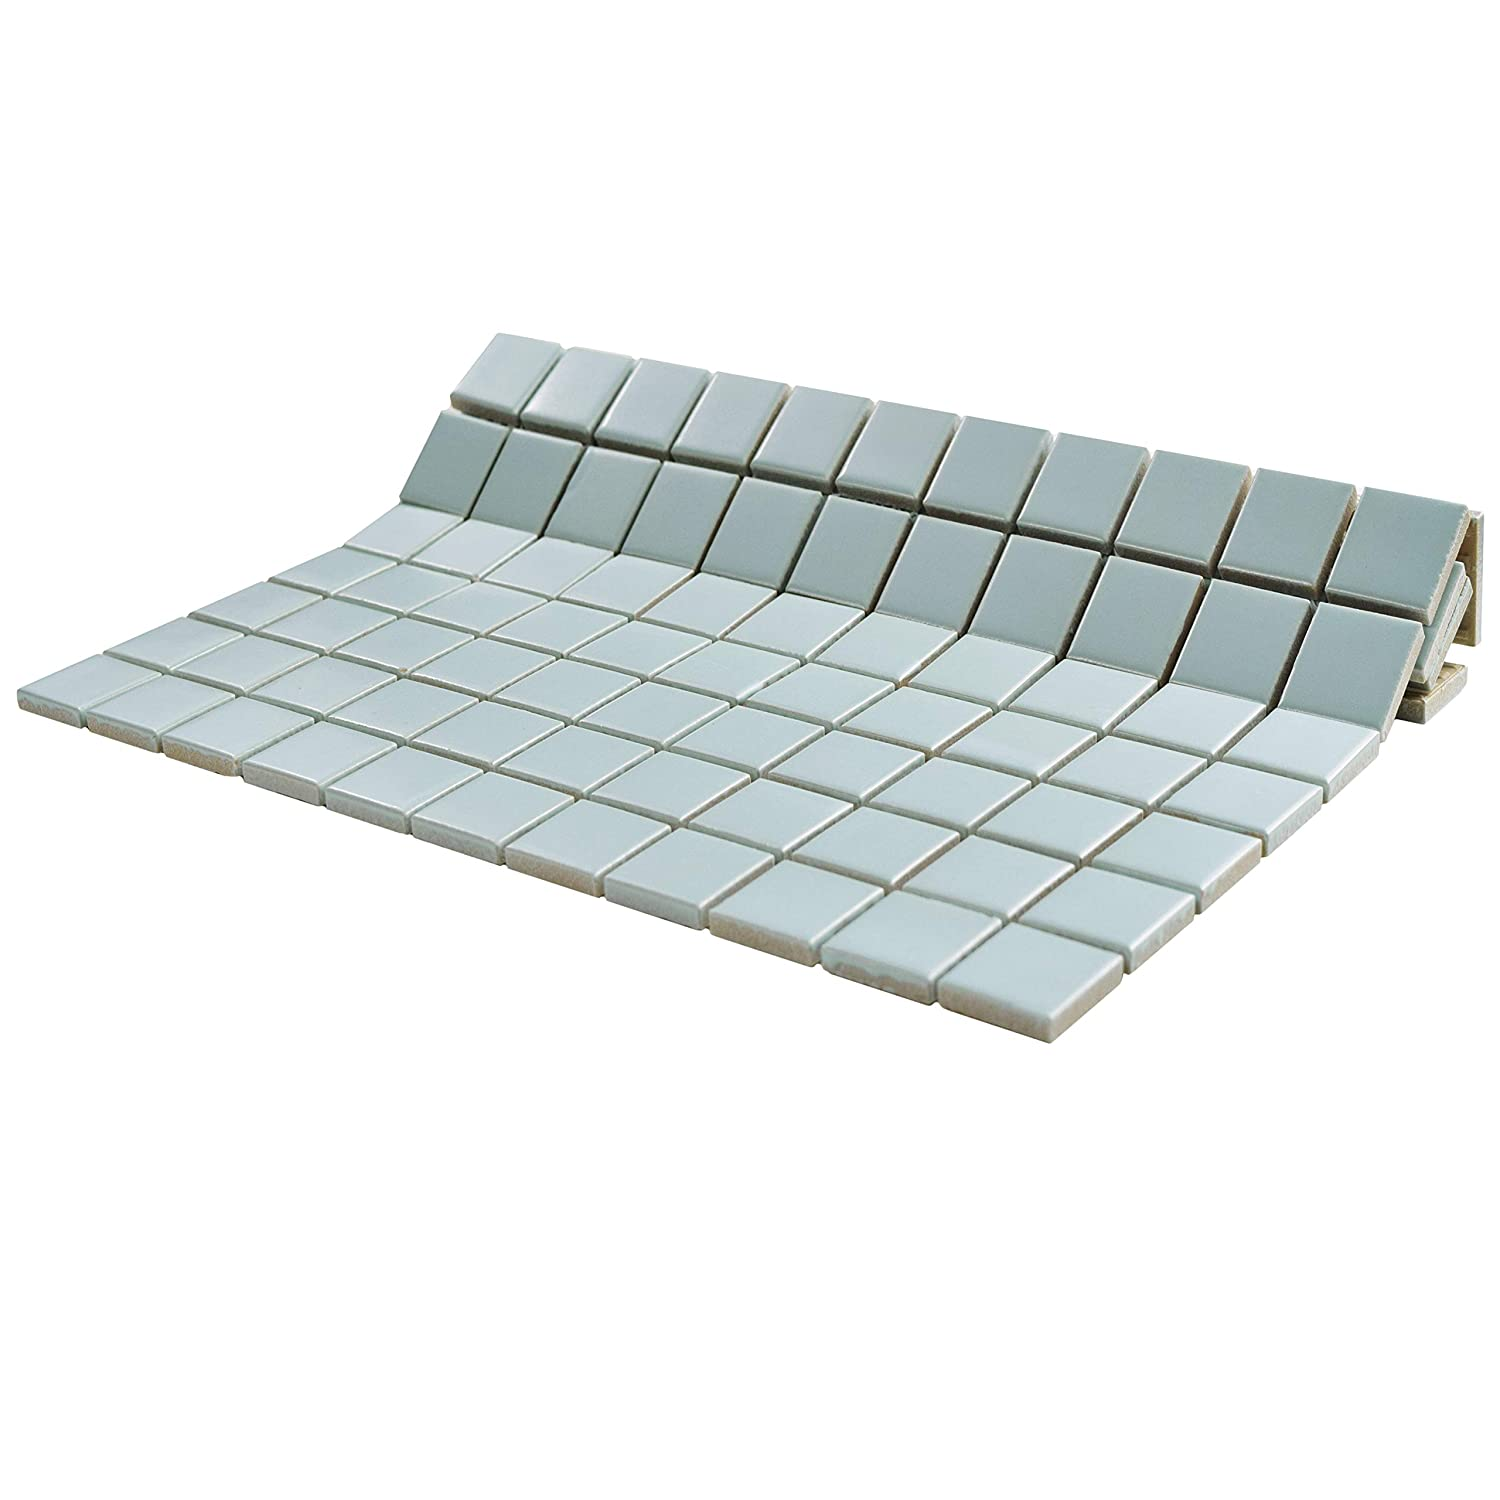 12.25 x 12.25 SomerTile FXLM2SGW Retro Square Porcelain Floor and Wall Tile Glossy White